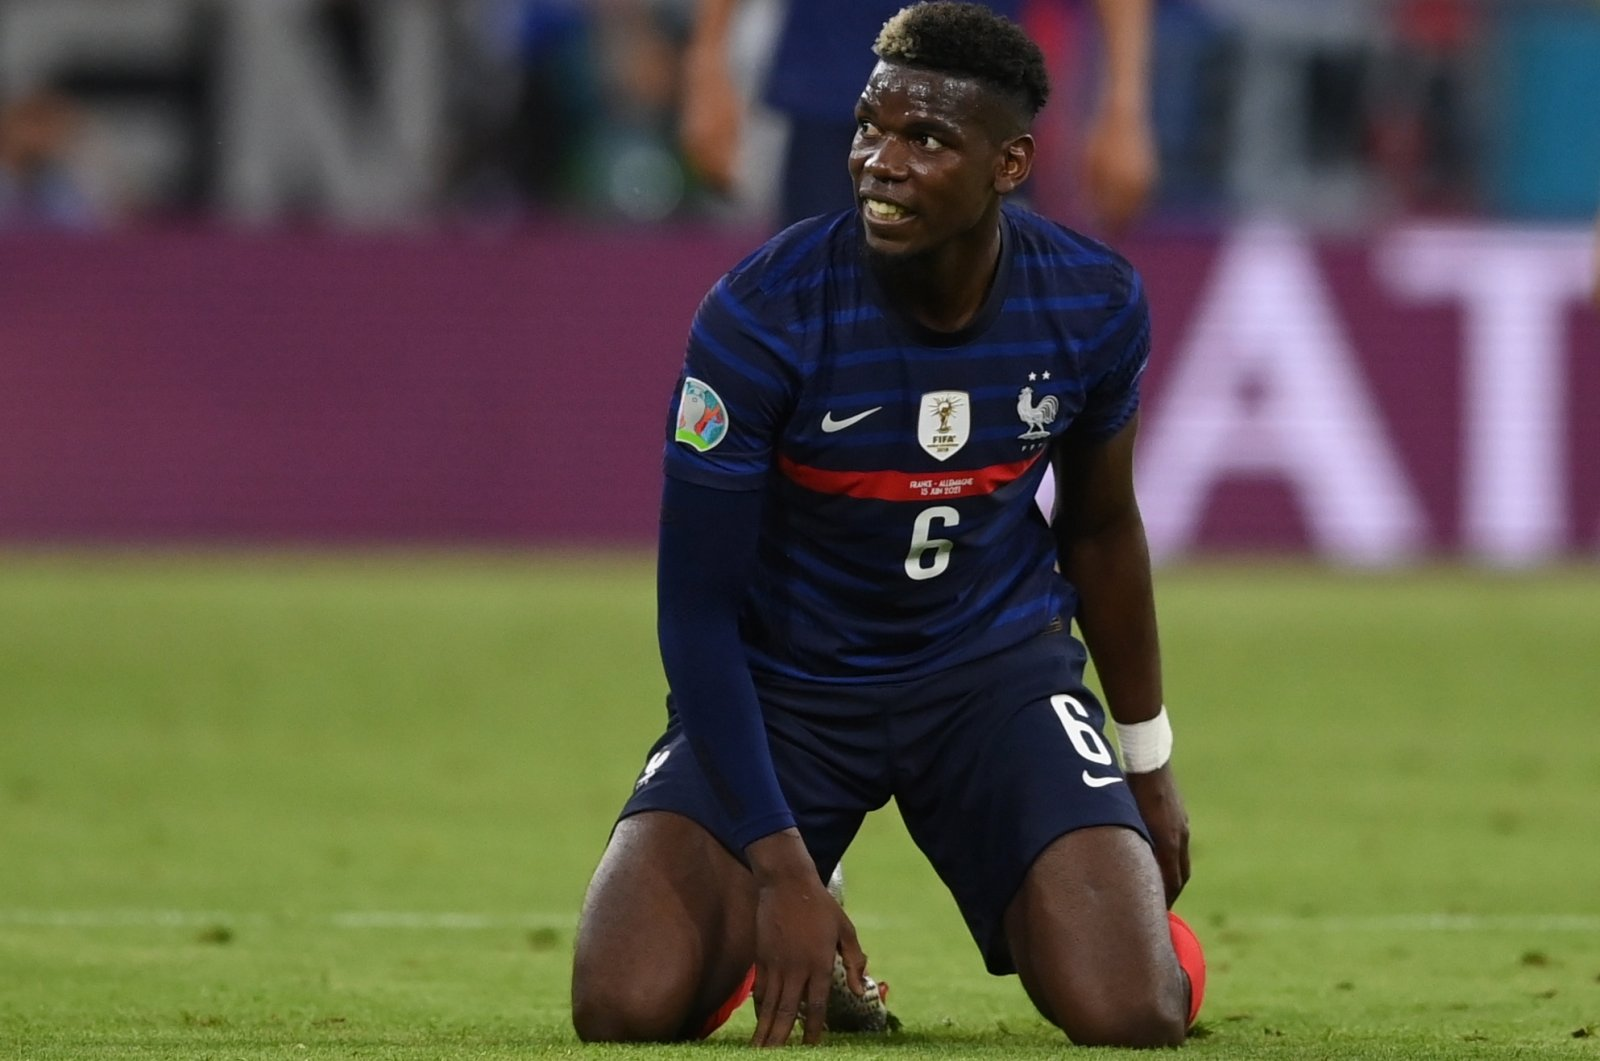 France's Paul Pogba reacts during the UEFA EURO 2020 Group F match against Germany, Munich, Germany, June 15, 2021. (EPA Photo)